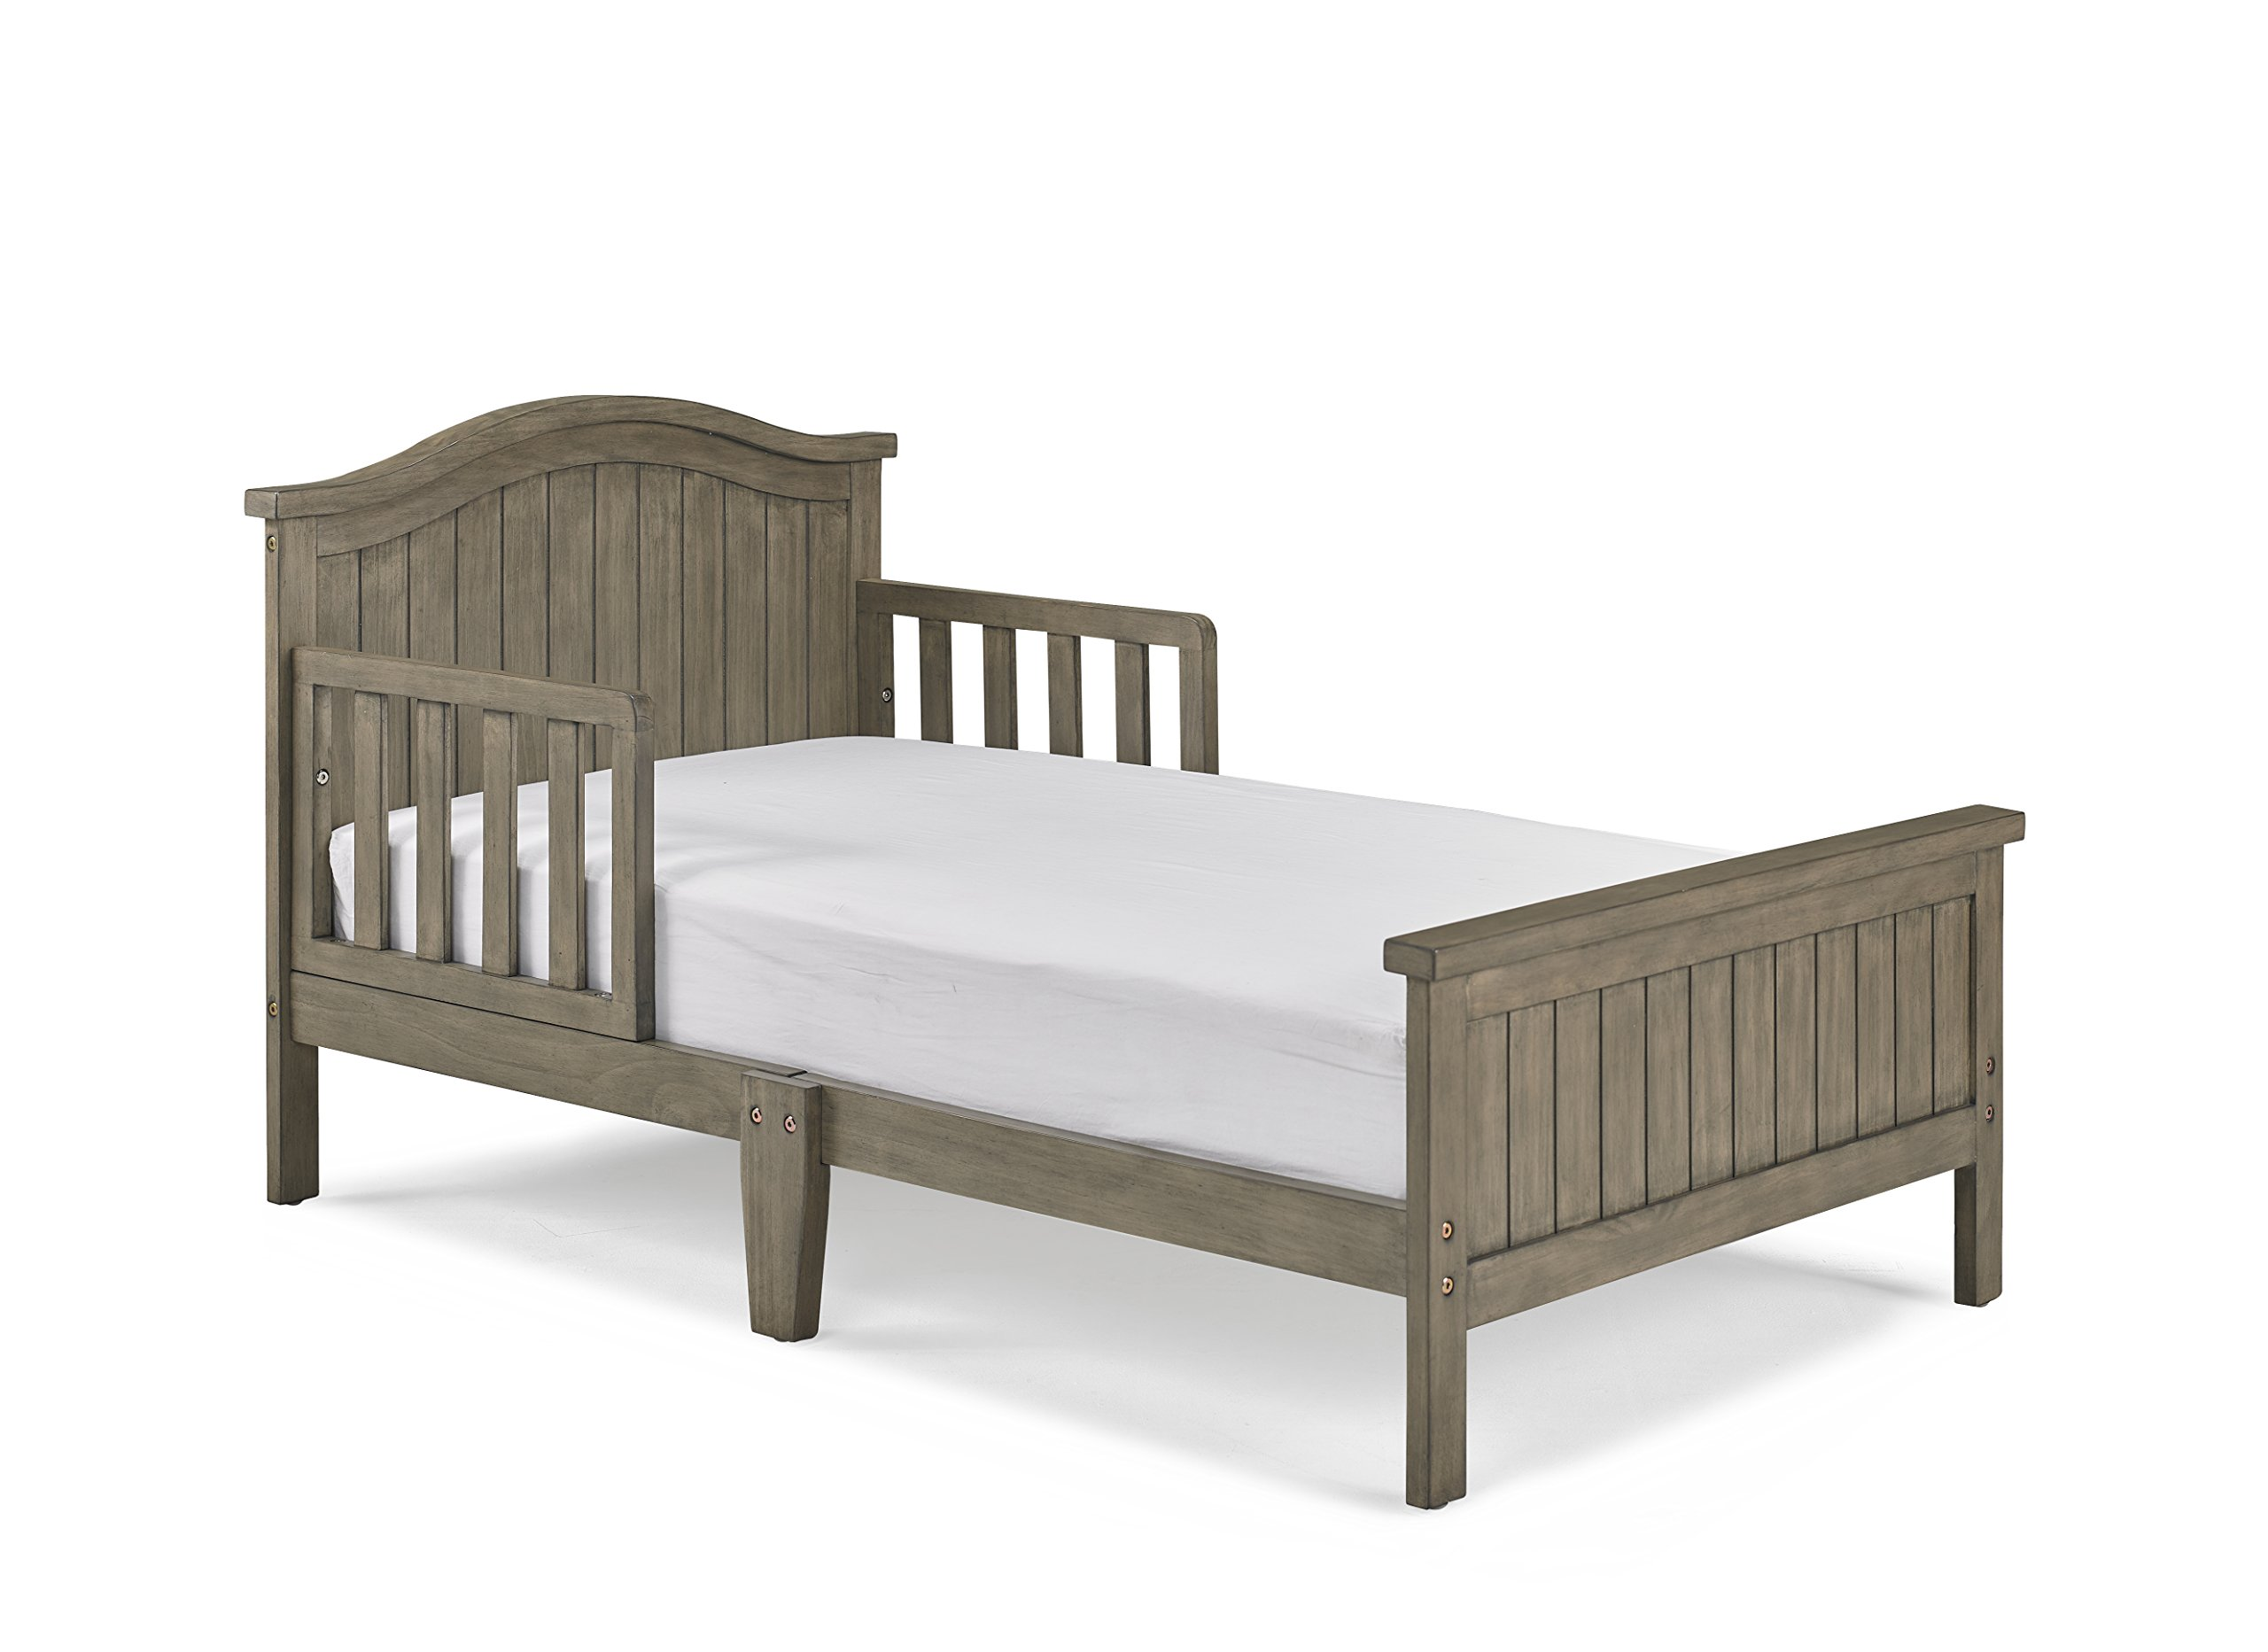 Fisher-Price Delmar Toddler Bed, Vintage Grey by Fisher-Price